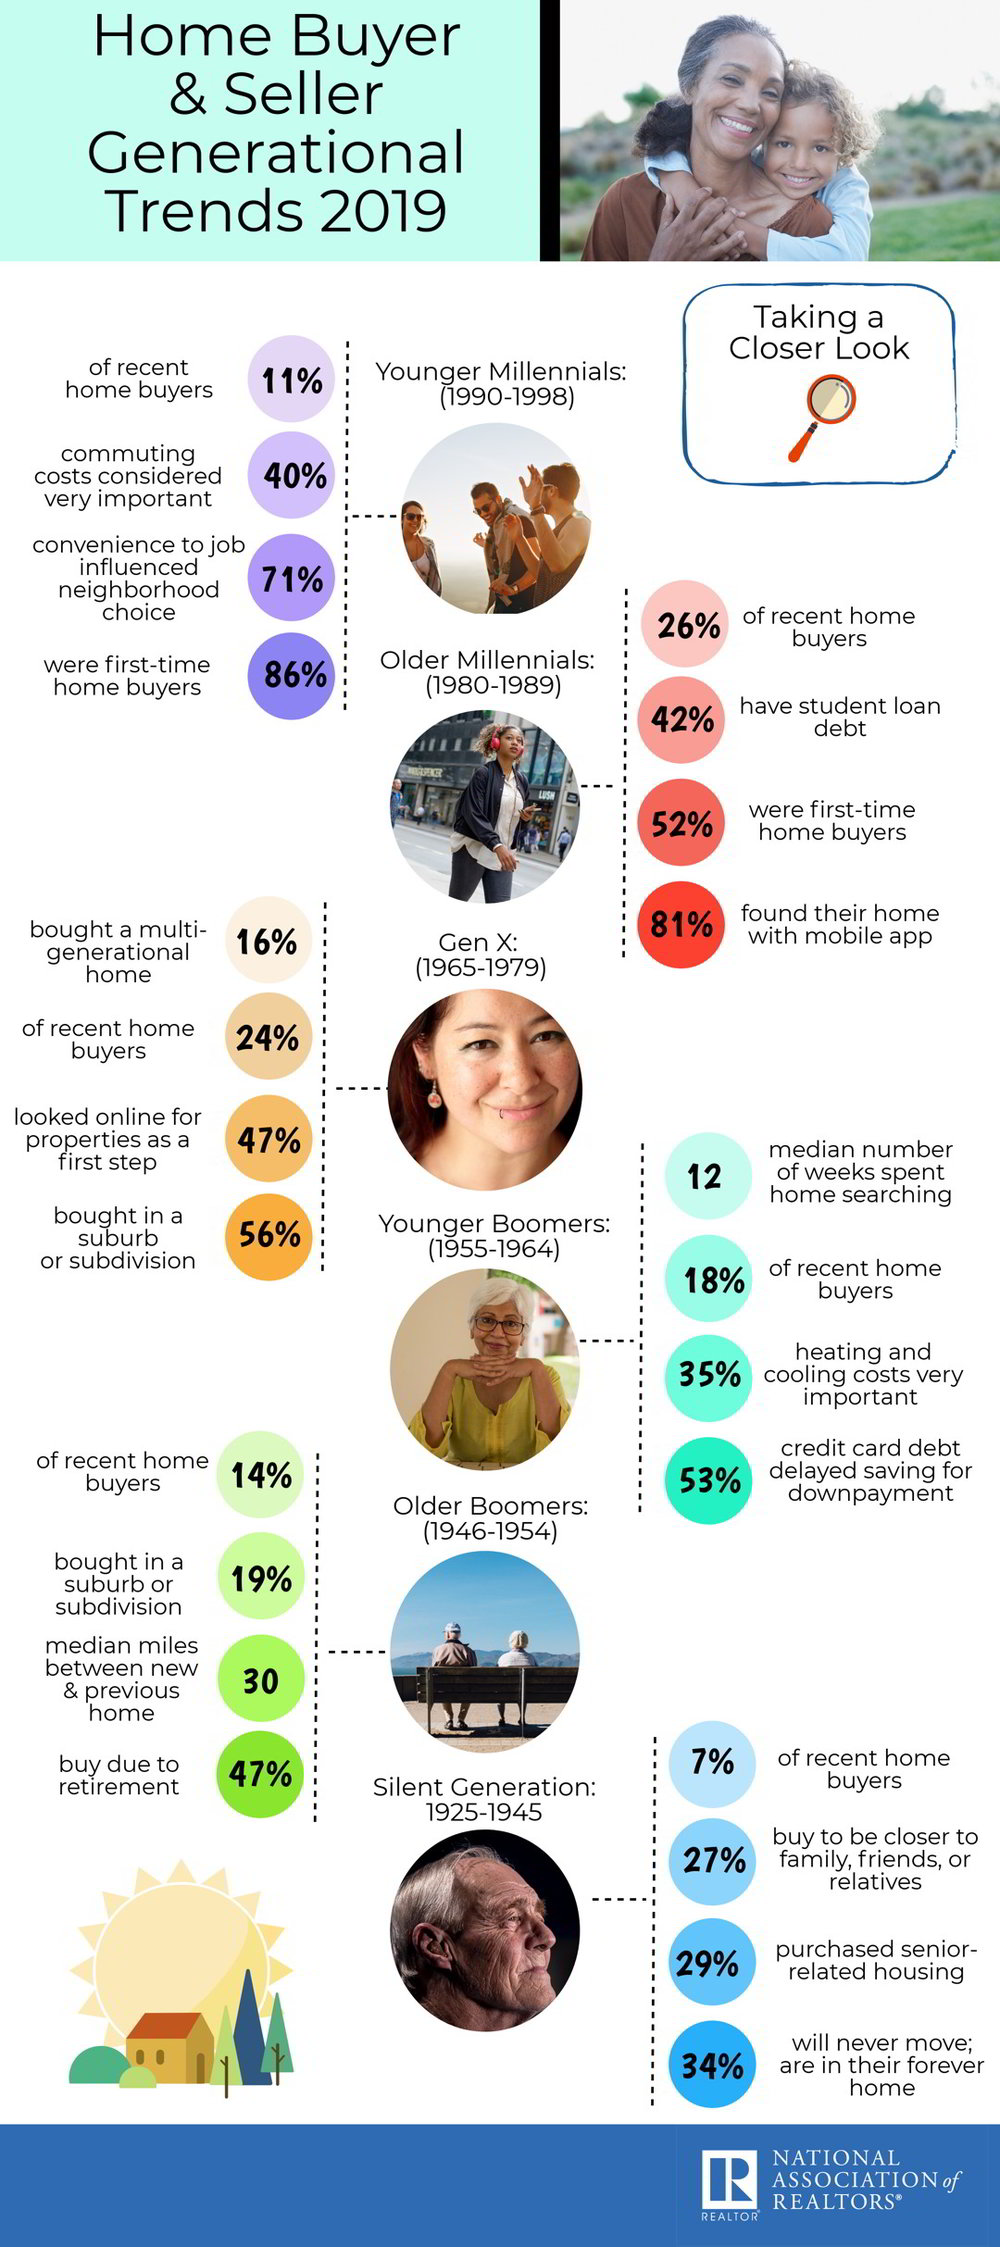 2019-home-buyer-and-seller-trends.jpg